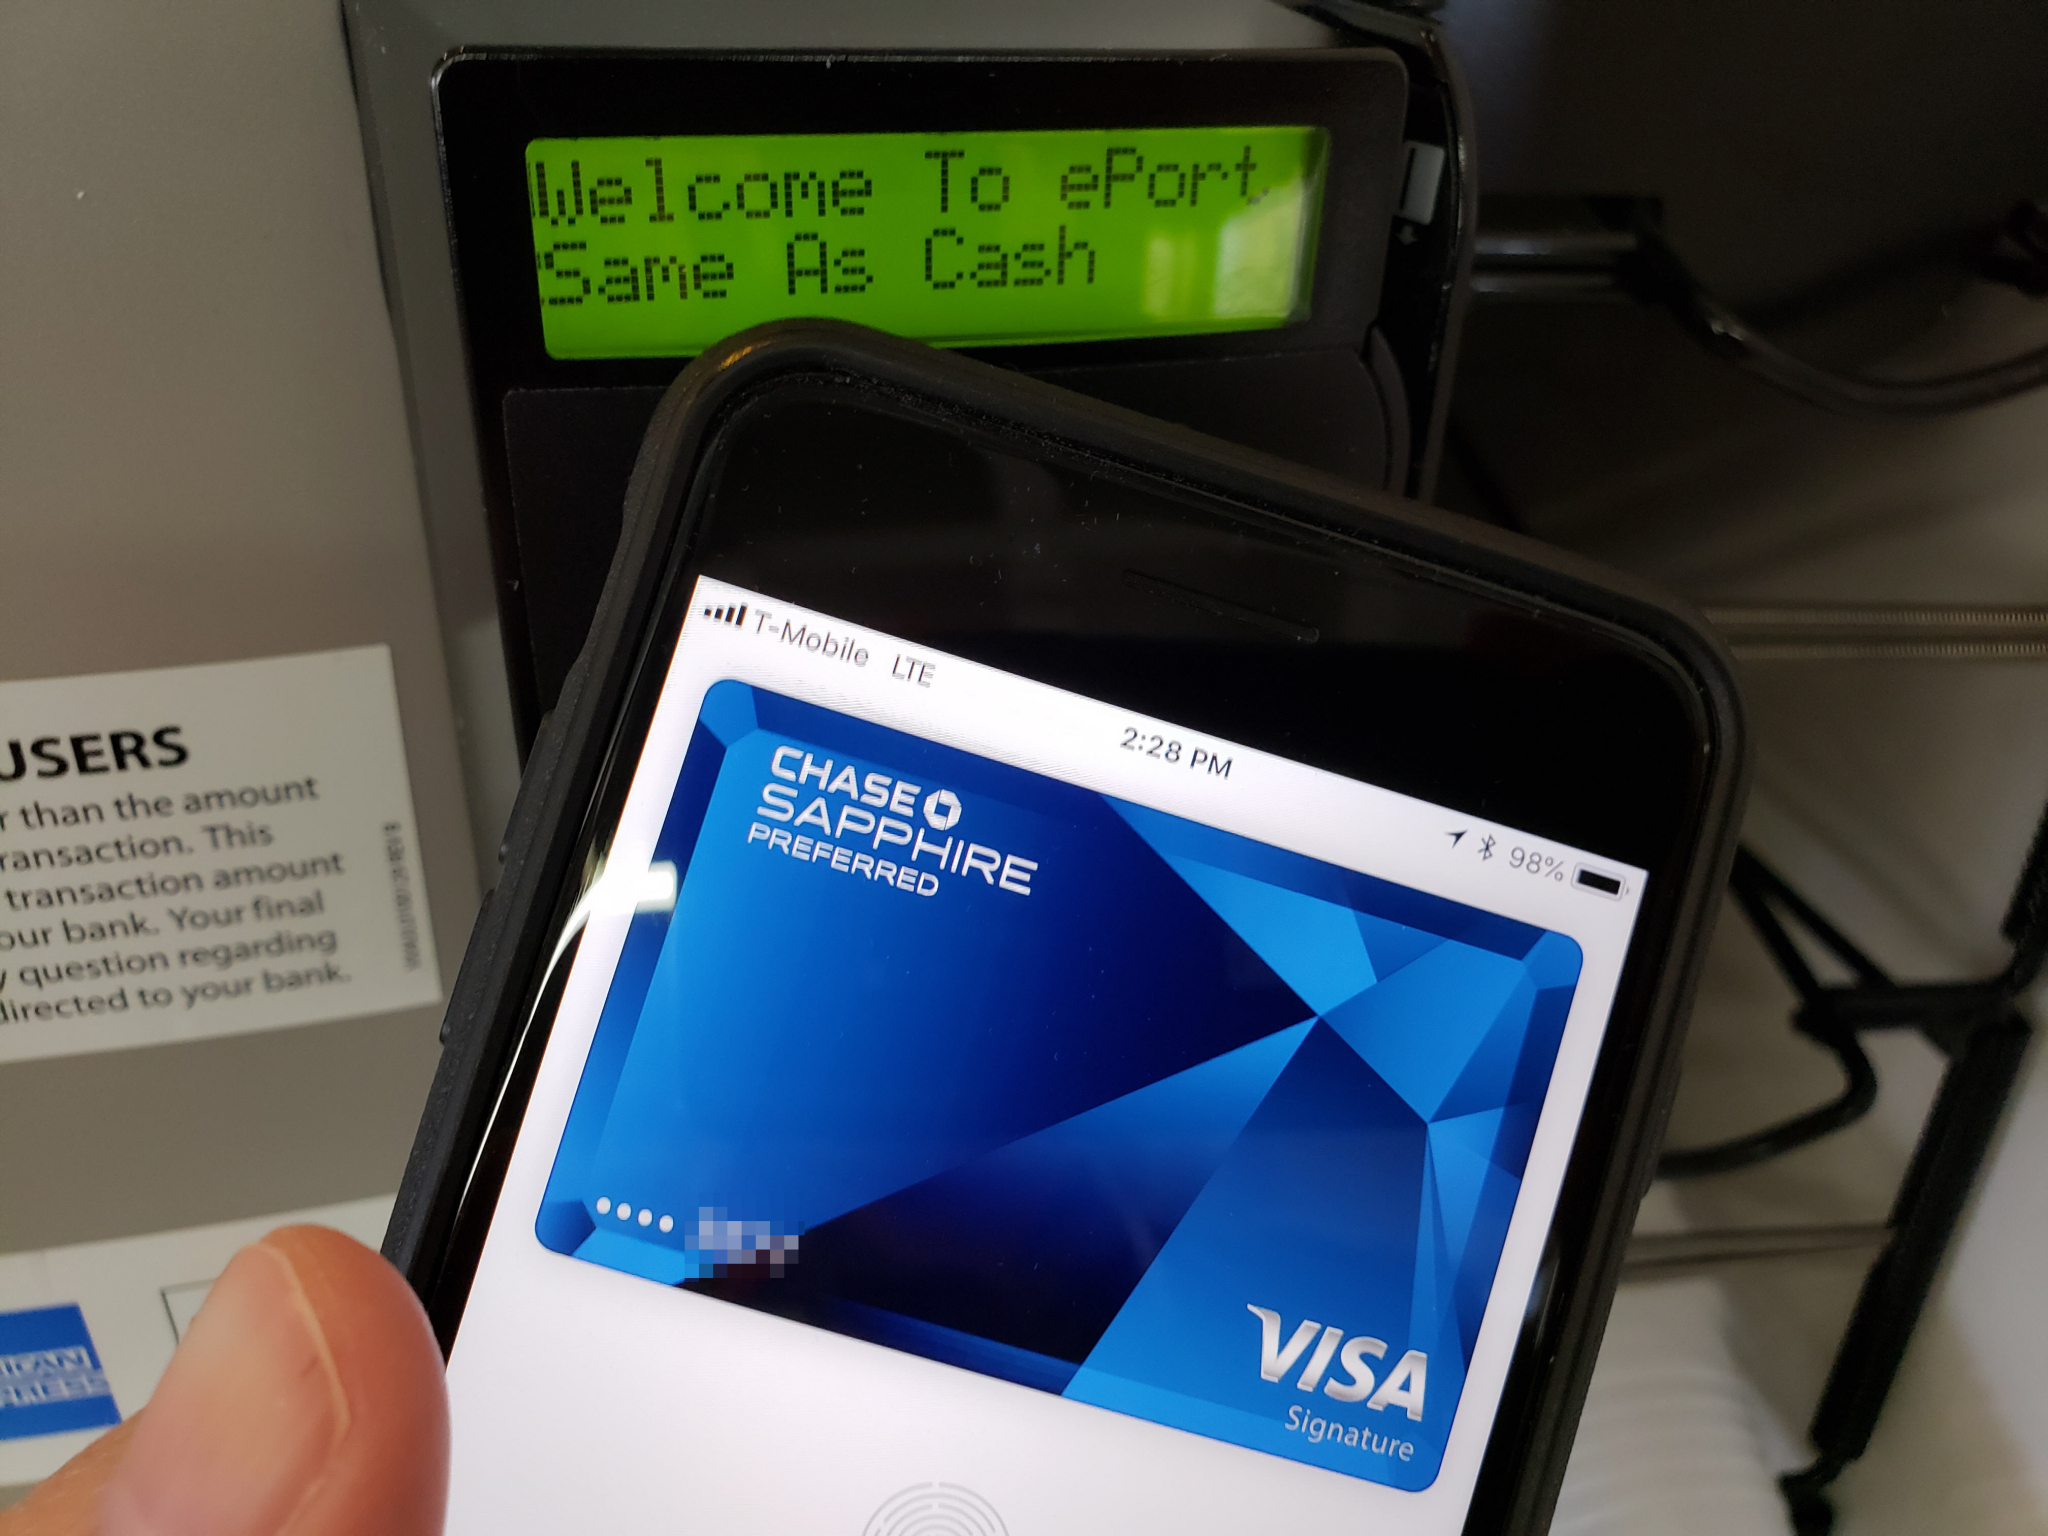 Why don't more retailers use Apple Pay, other NFC payment